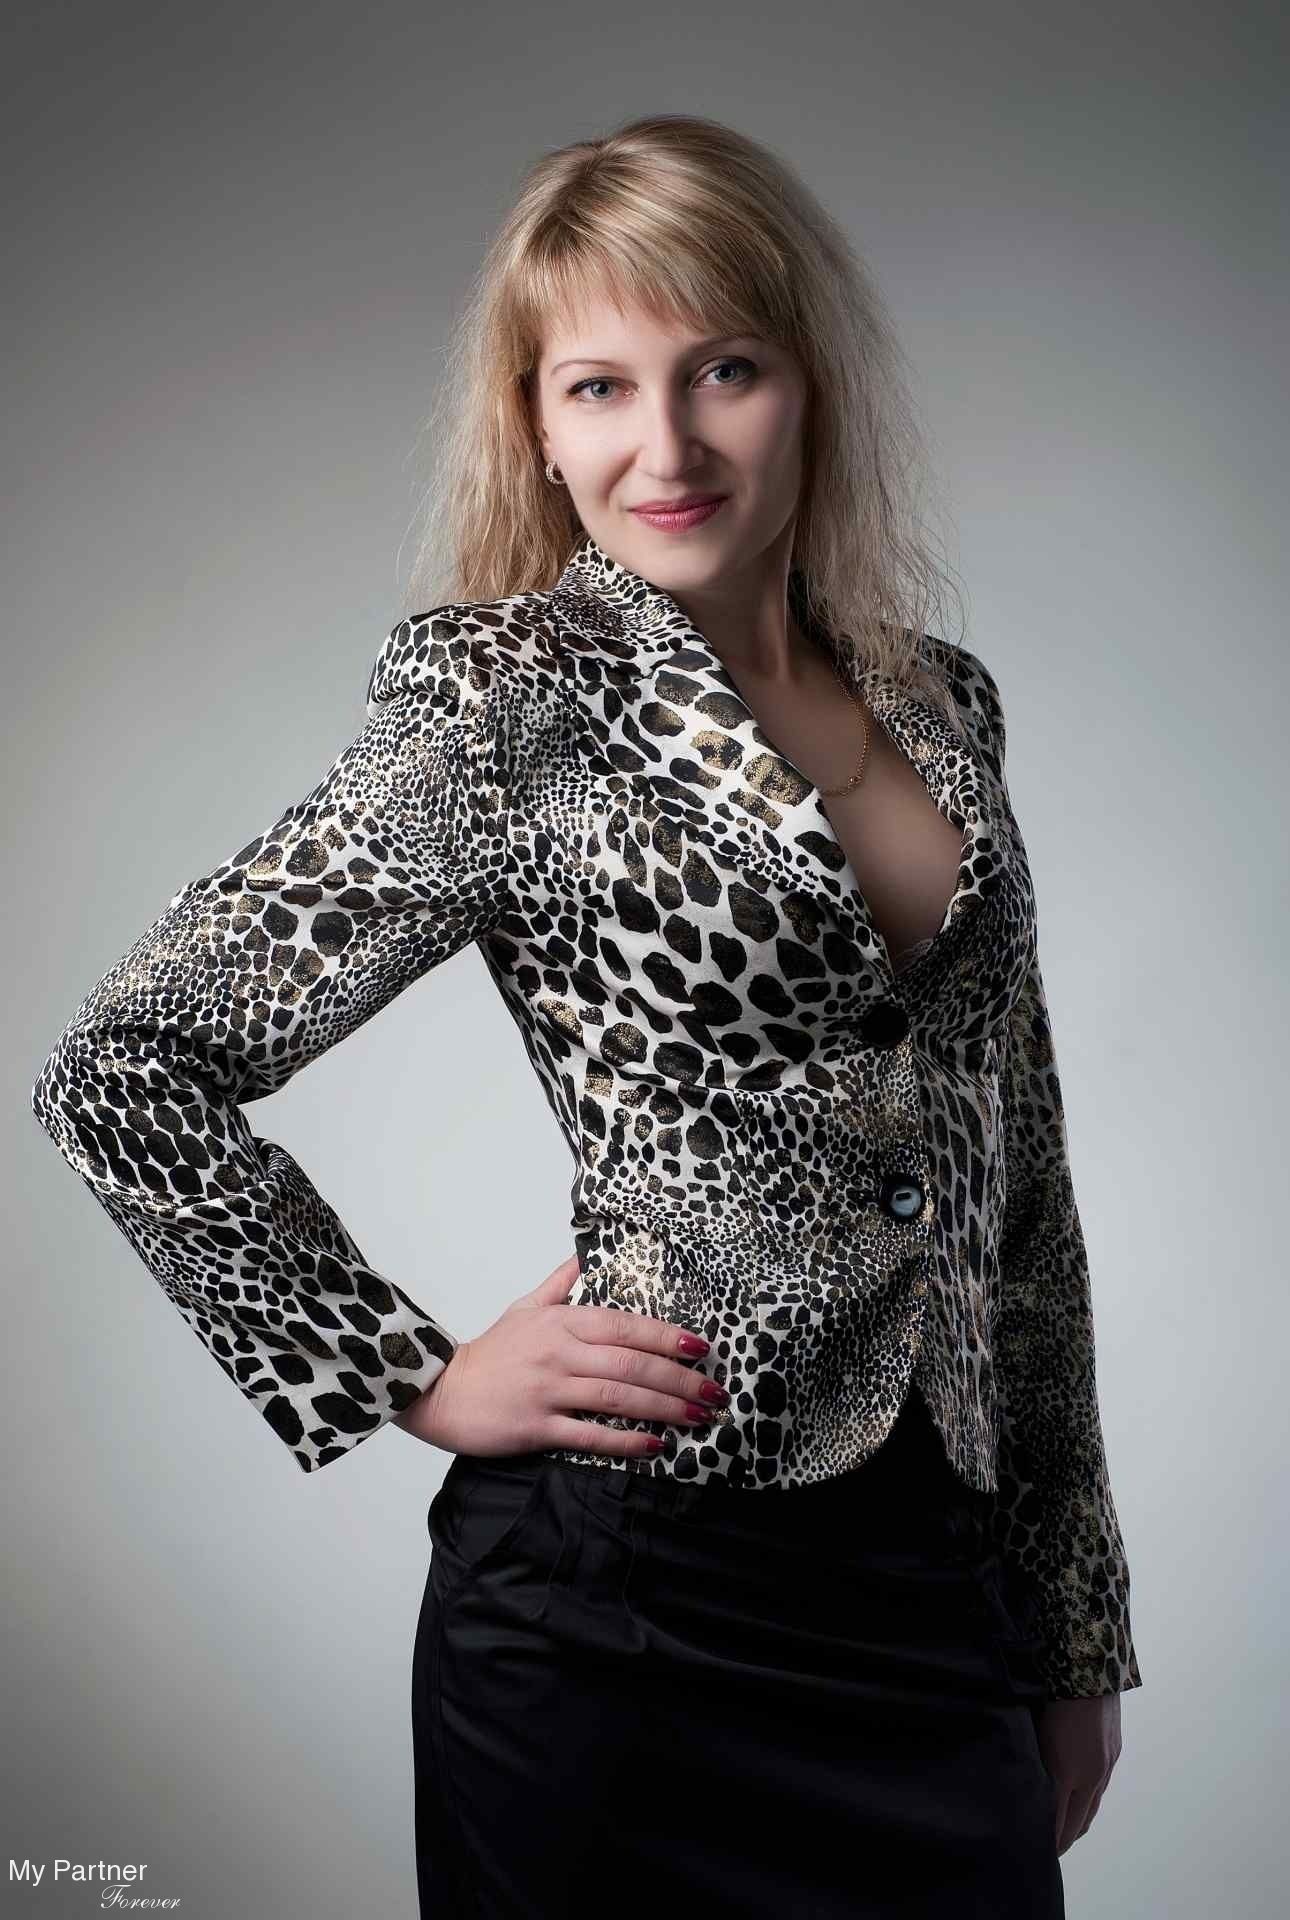 Single Girl from Ukraine - Olga from Zaporozhye, Ukraine